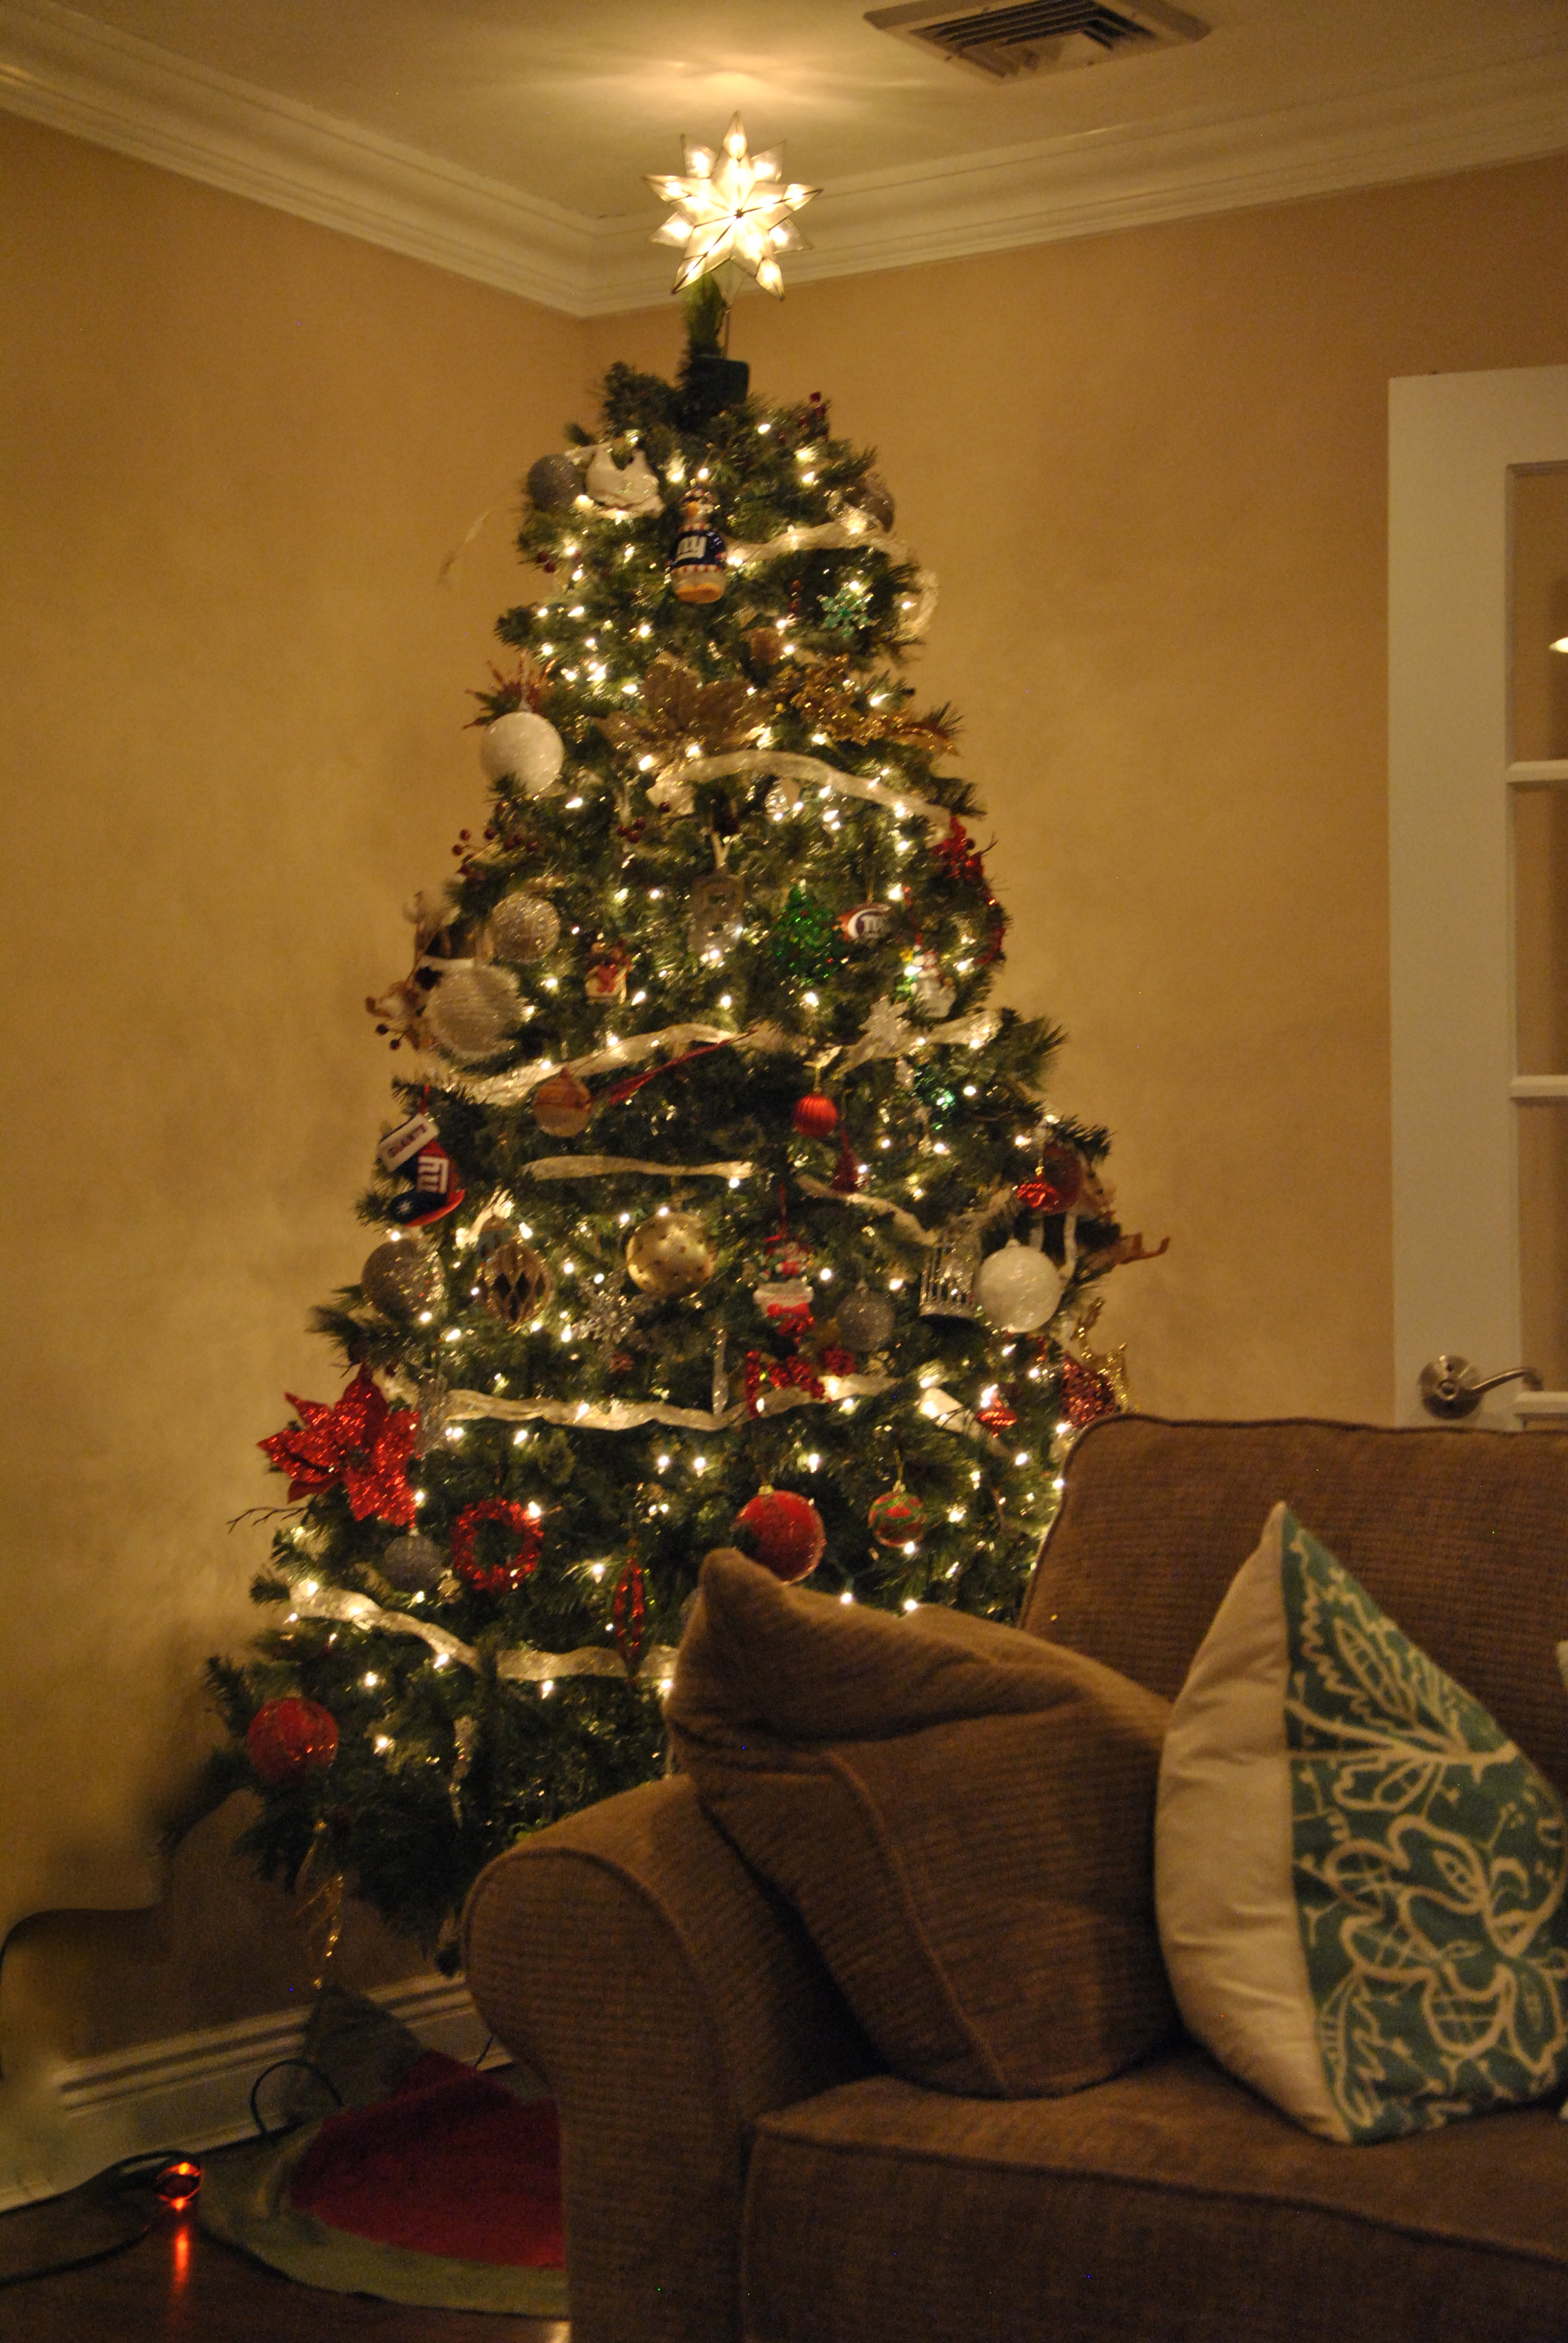 Beach themed christmas ornaments - Our Beach Themed Tree In The Sunroom Is A Real Tree Complete With A Flamingo Tree Skirt And Starfish Tree Topper On It You Will Find Ornaments From Some